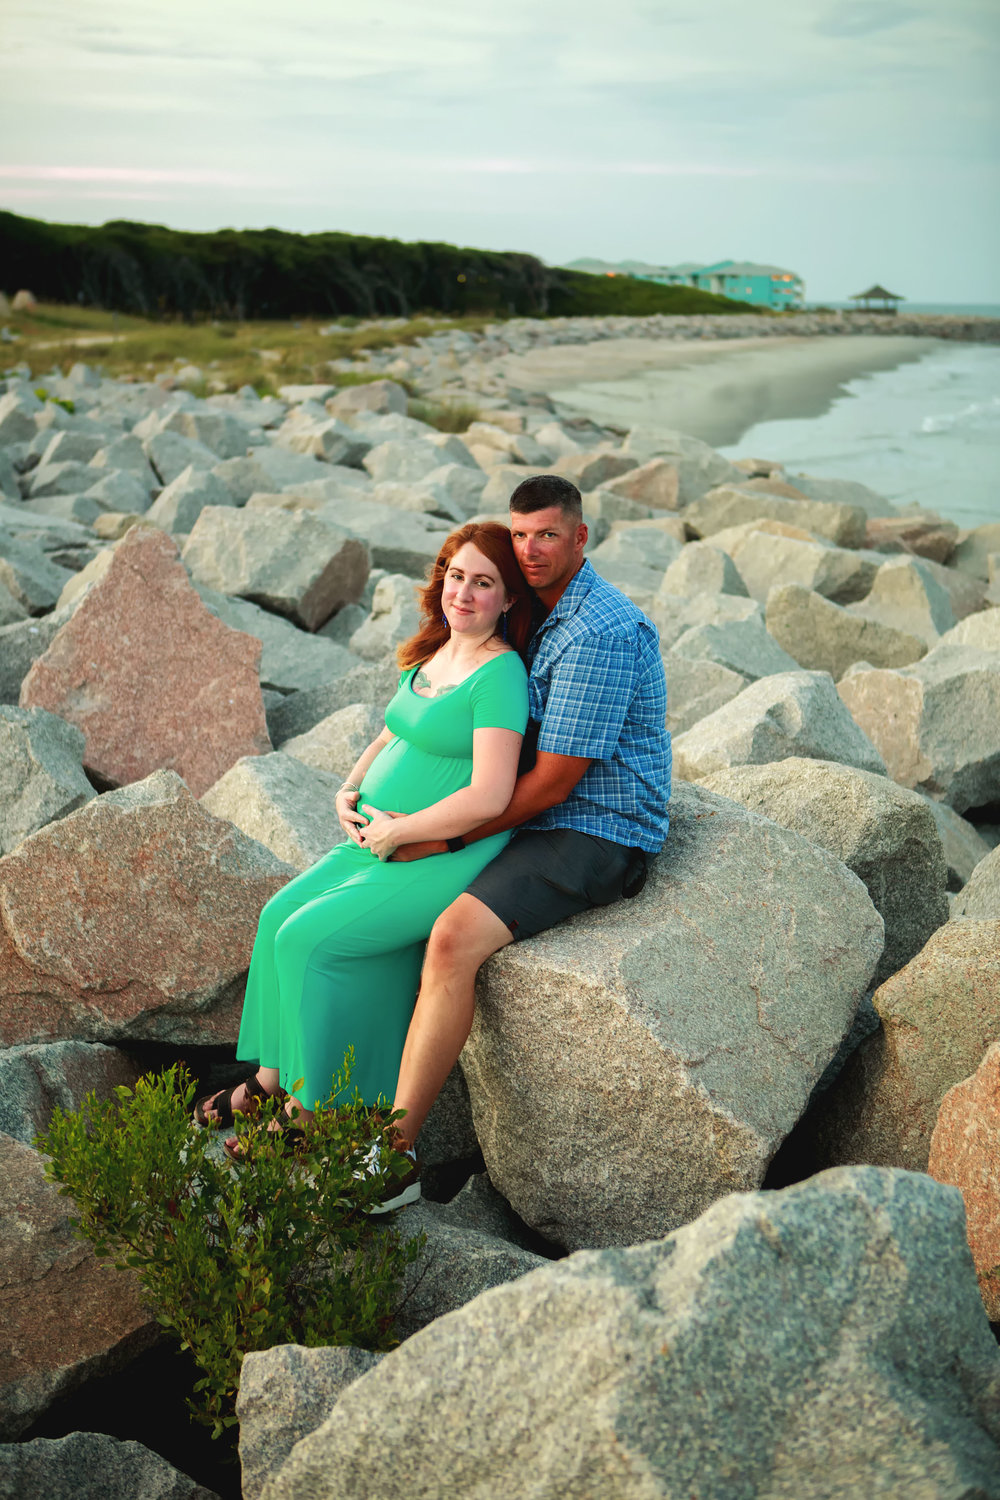 Fort_Fisher_Maternity_Photographer_Tiffany_Abruzzo_32.jpg